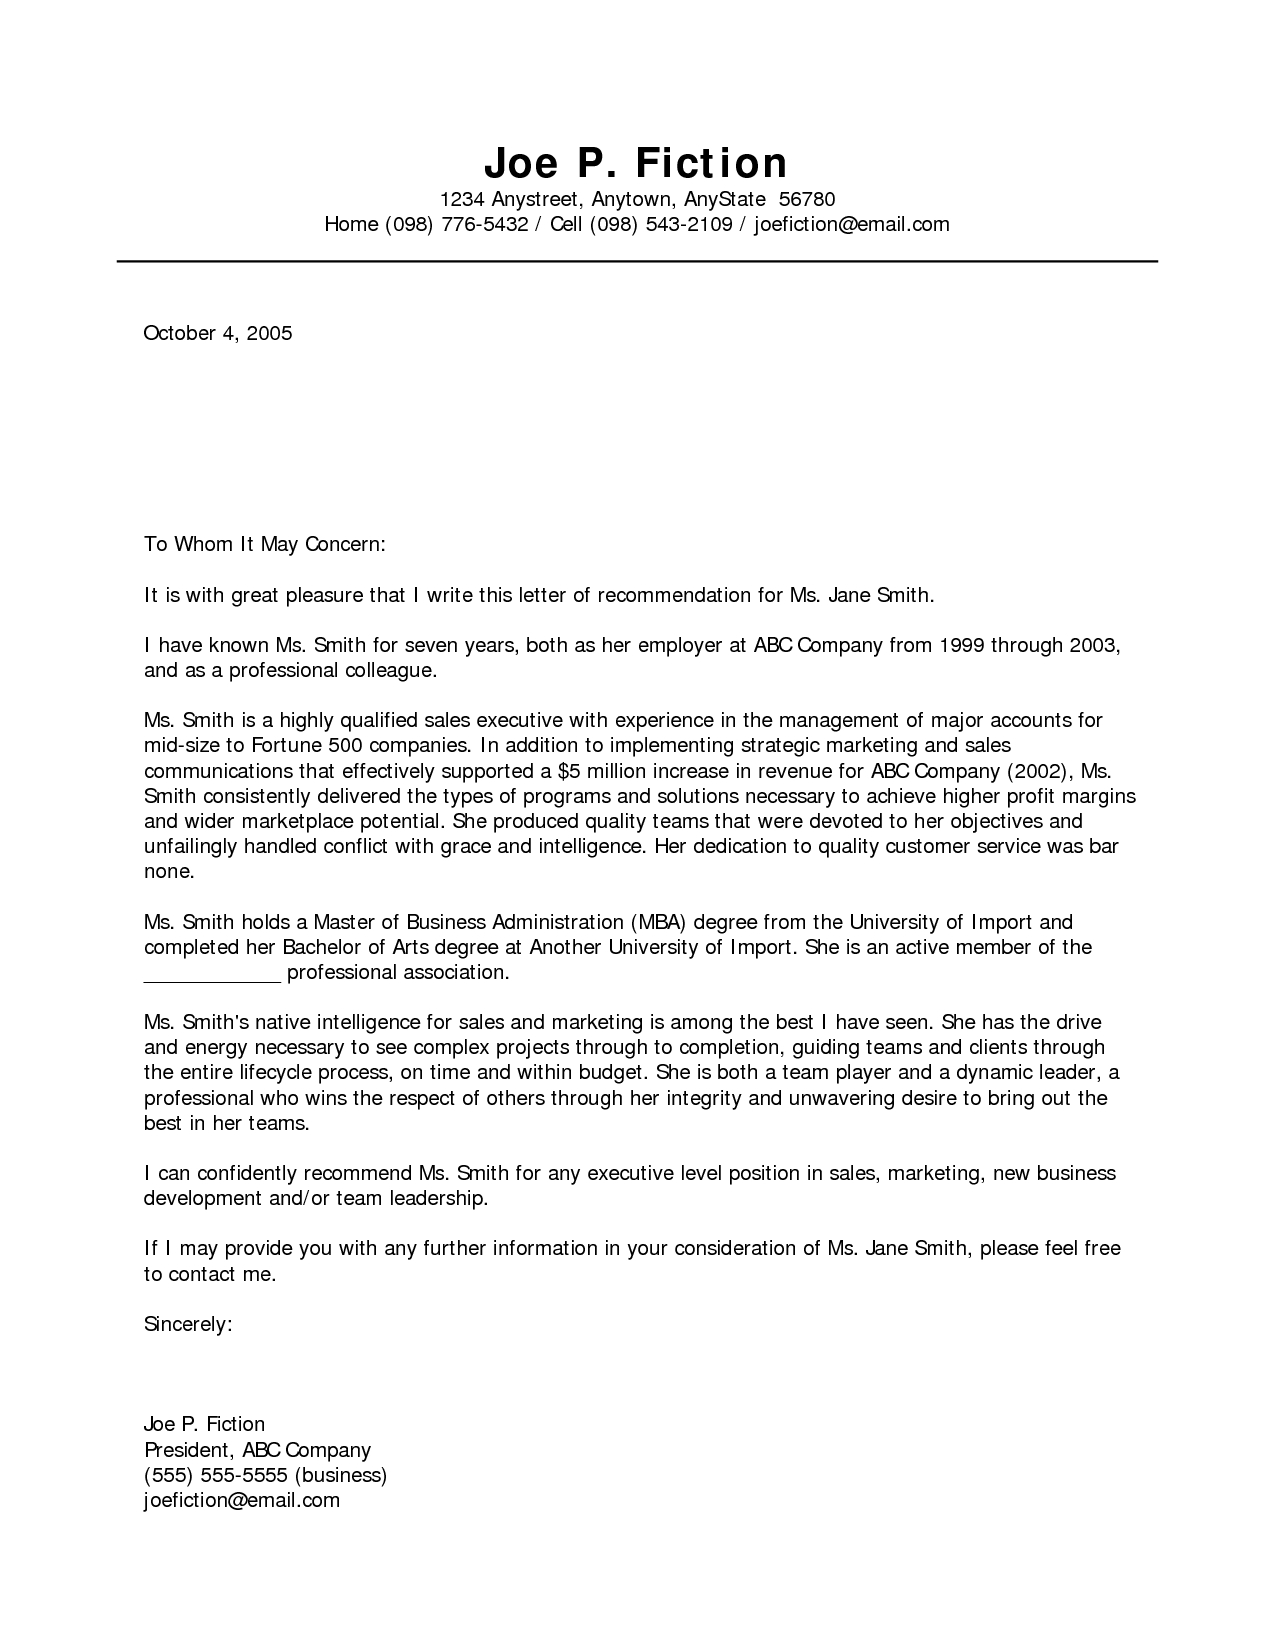 Letter Of Recommendation Template Pdf - Business Re Mendation Letter Template Acurnamedia